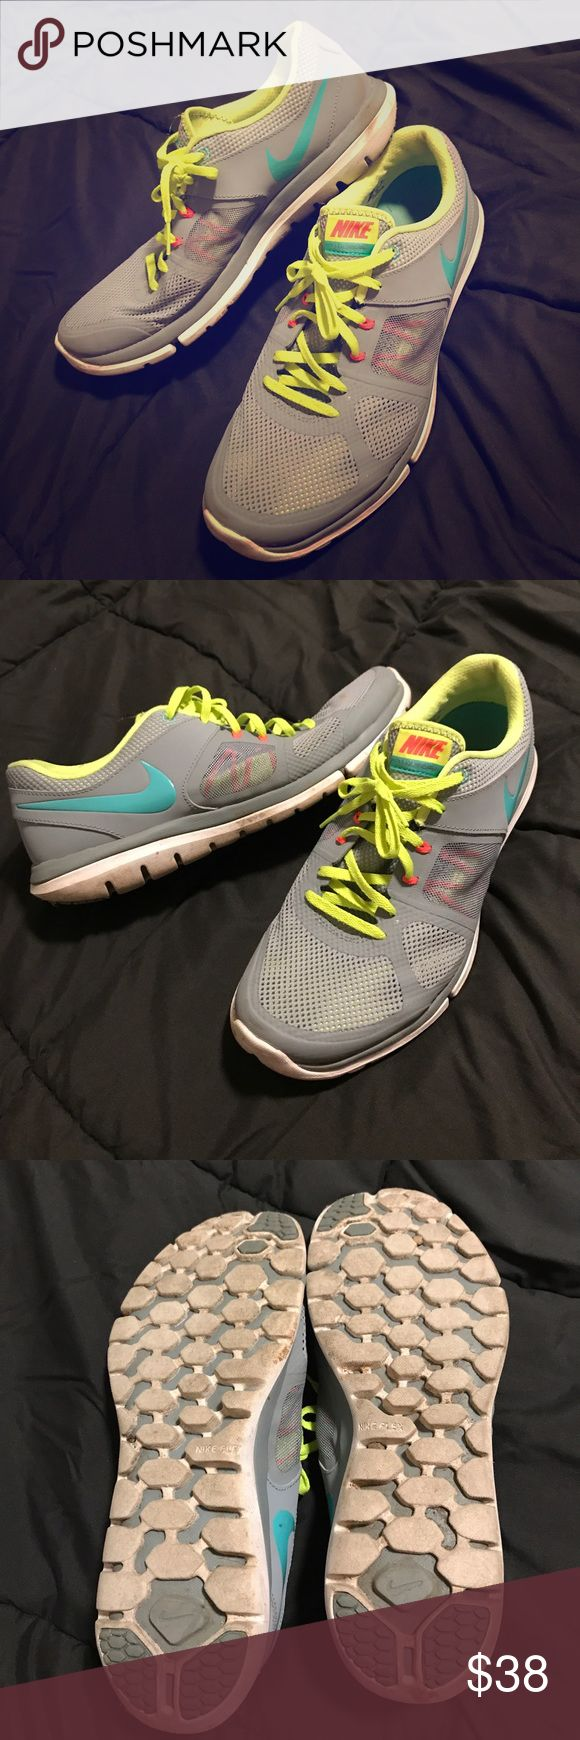 Women's nikes Women's size 12 Nike flex 2014 run tennis shoes. They've only been worn a couple of times and are in great shape! Nike Shoes Athletic Shoes